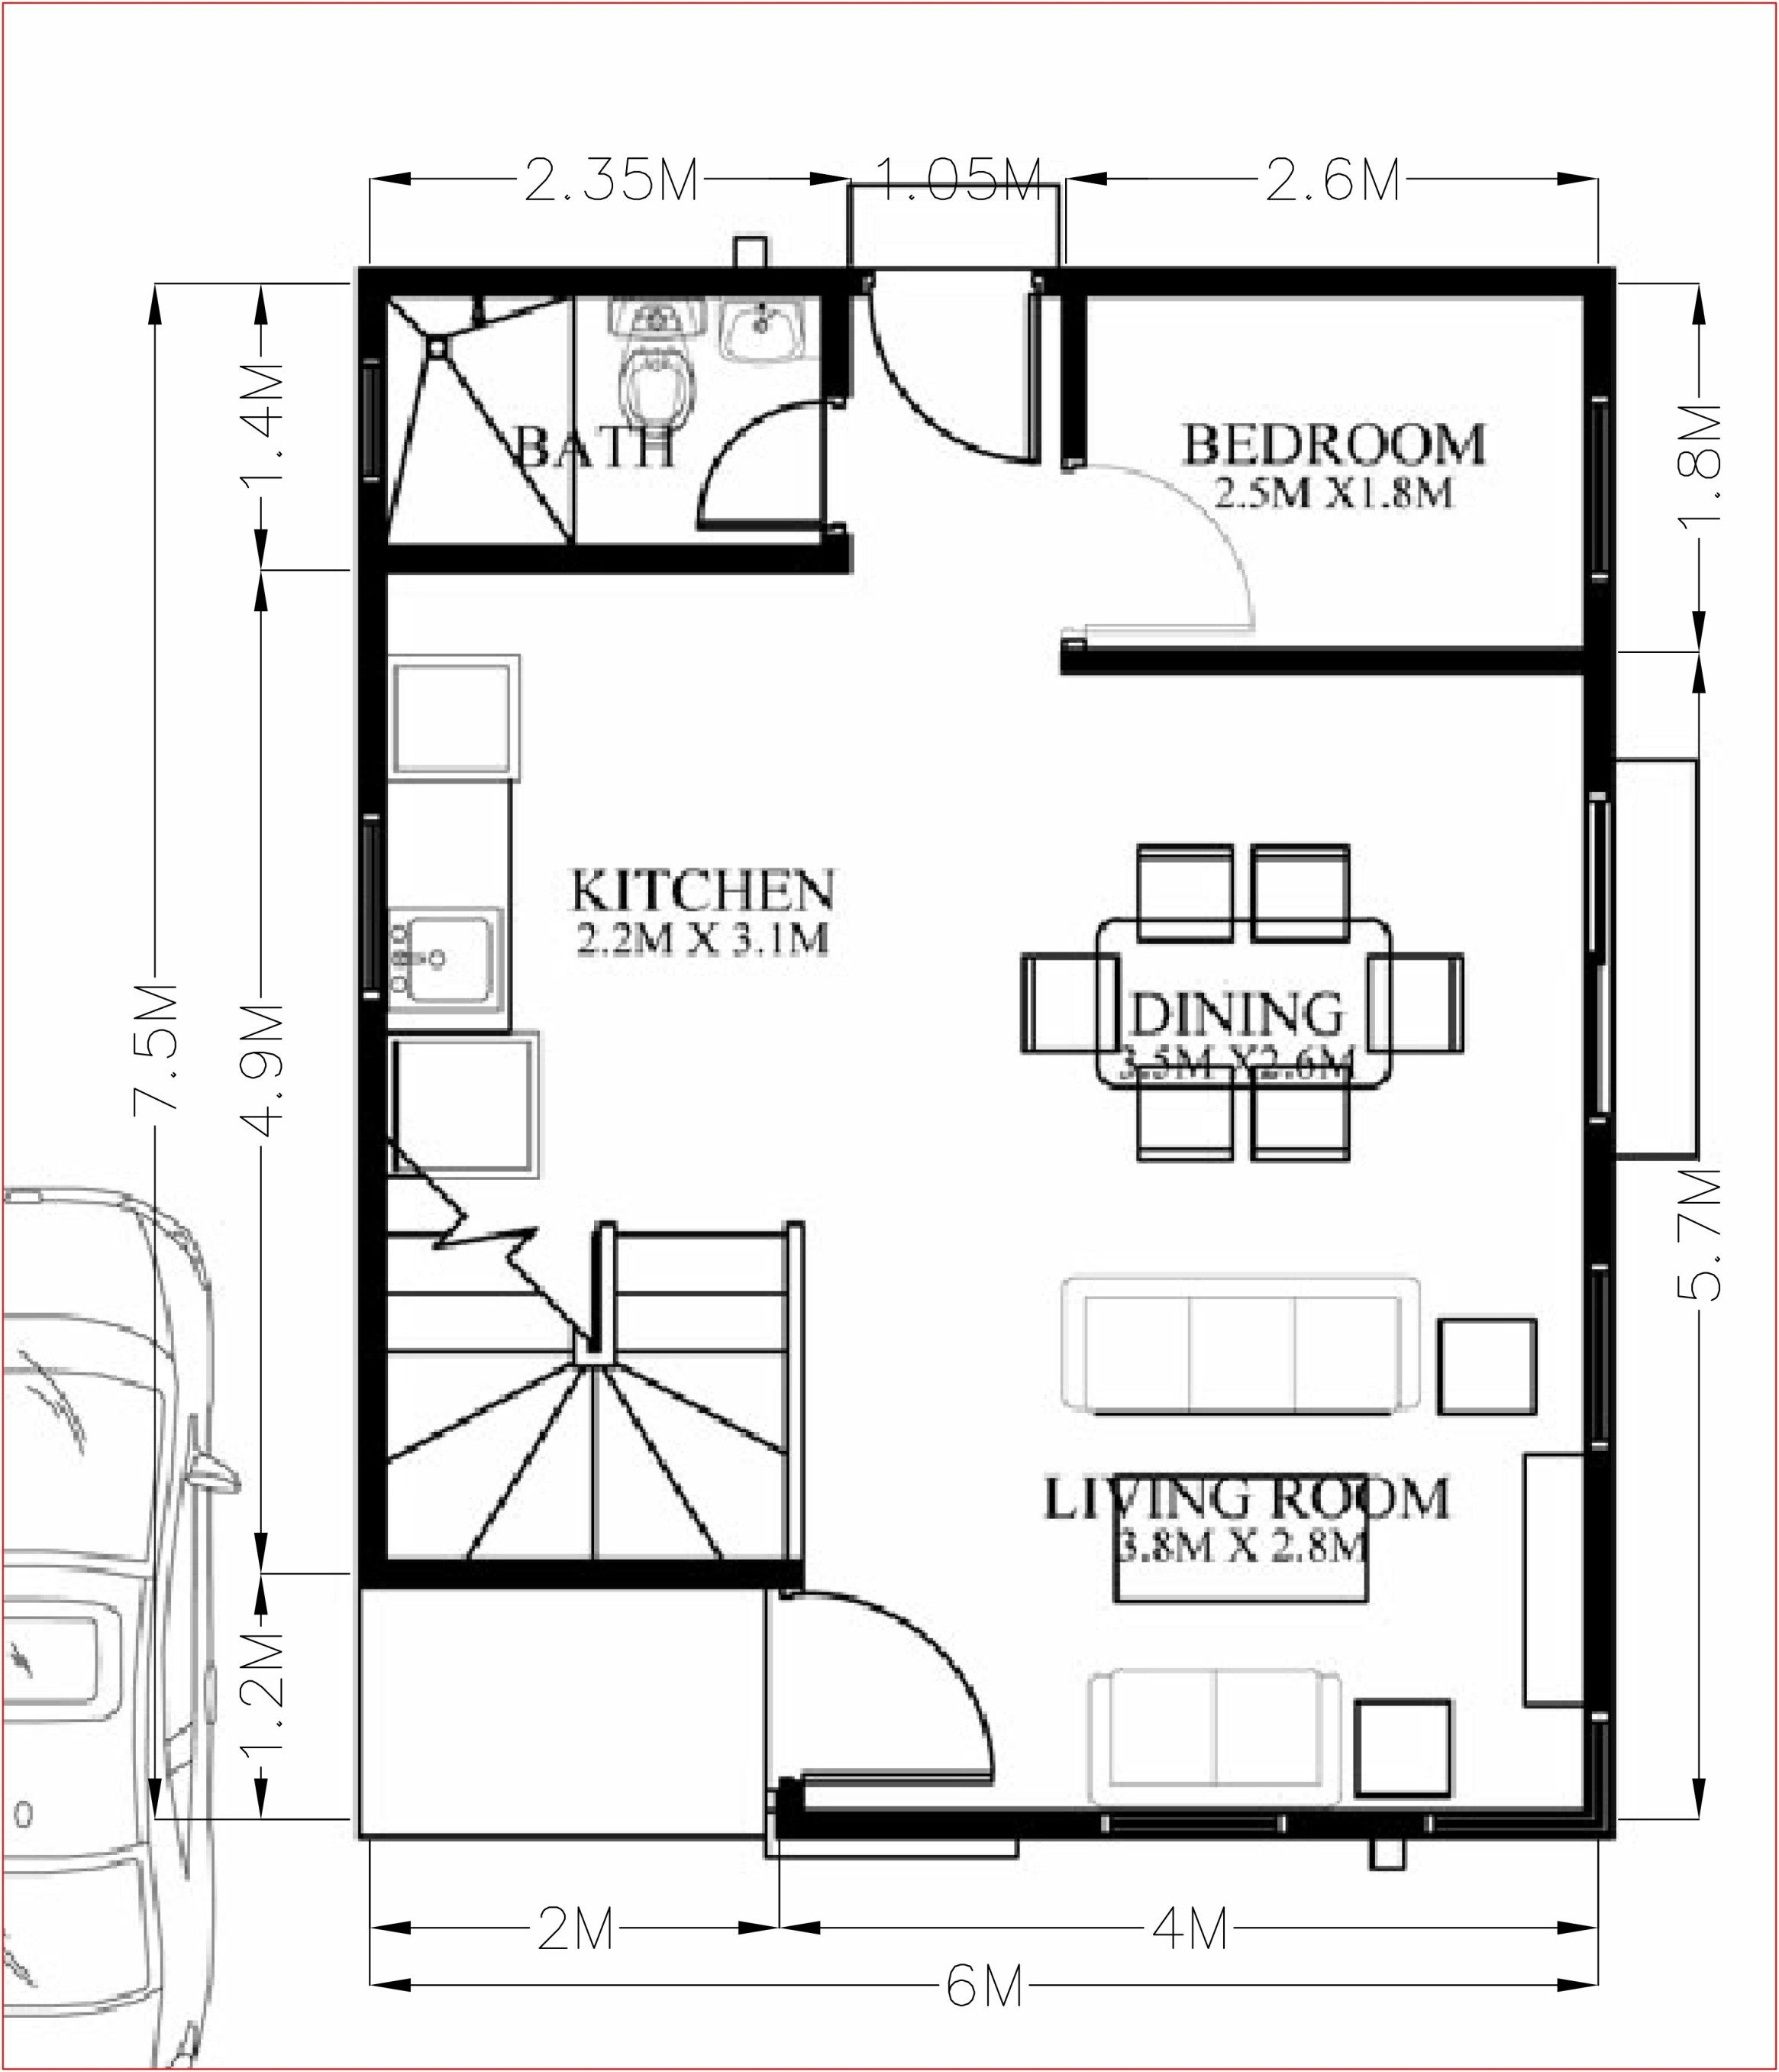 Small Home Design Plan 6x7 5m With 4 Bedrooms Home Design With Plan House Plans Mediterranean Style House Plans Craftsman Style House Plans